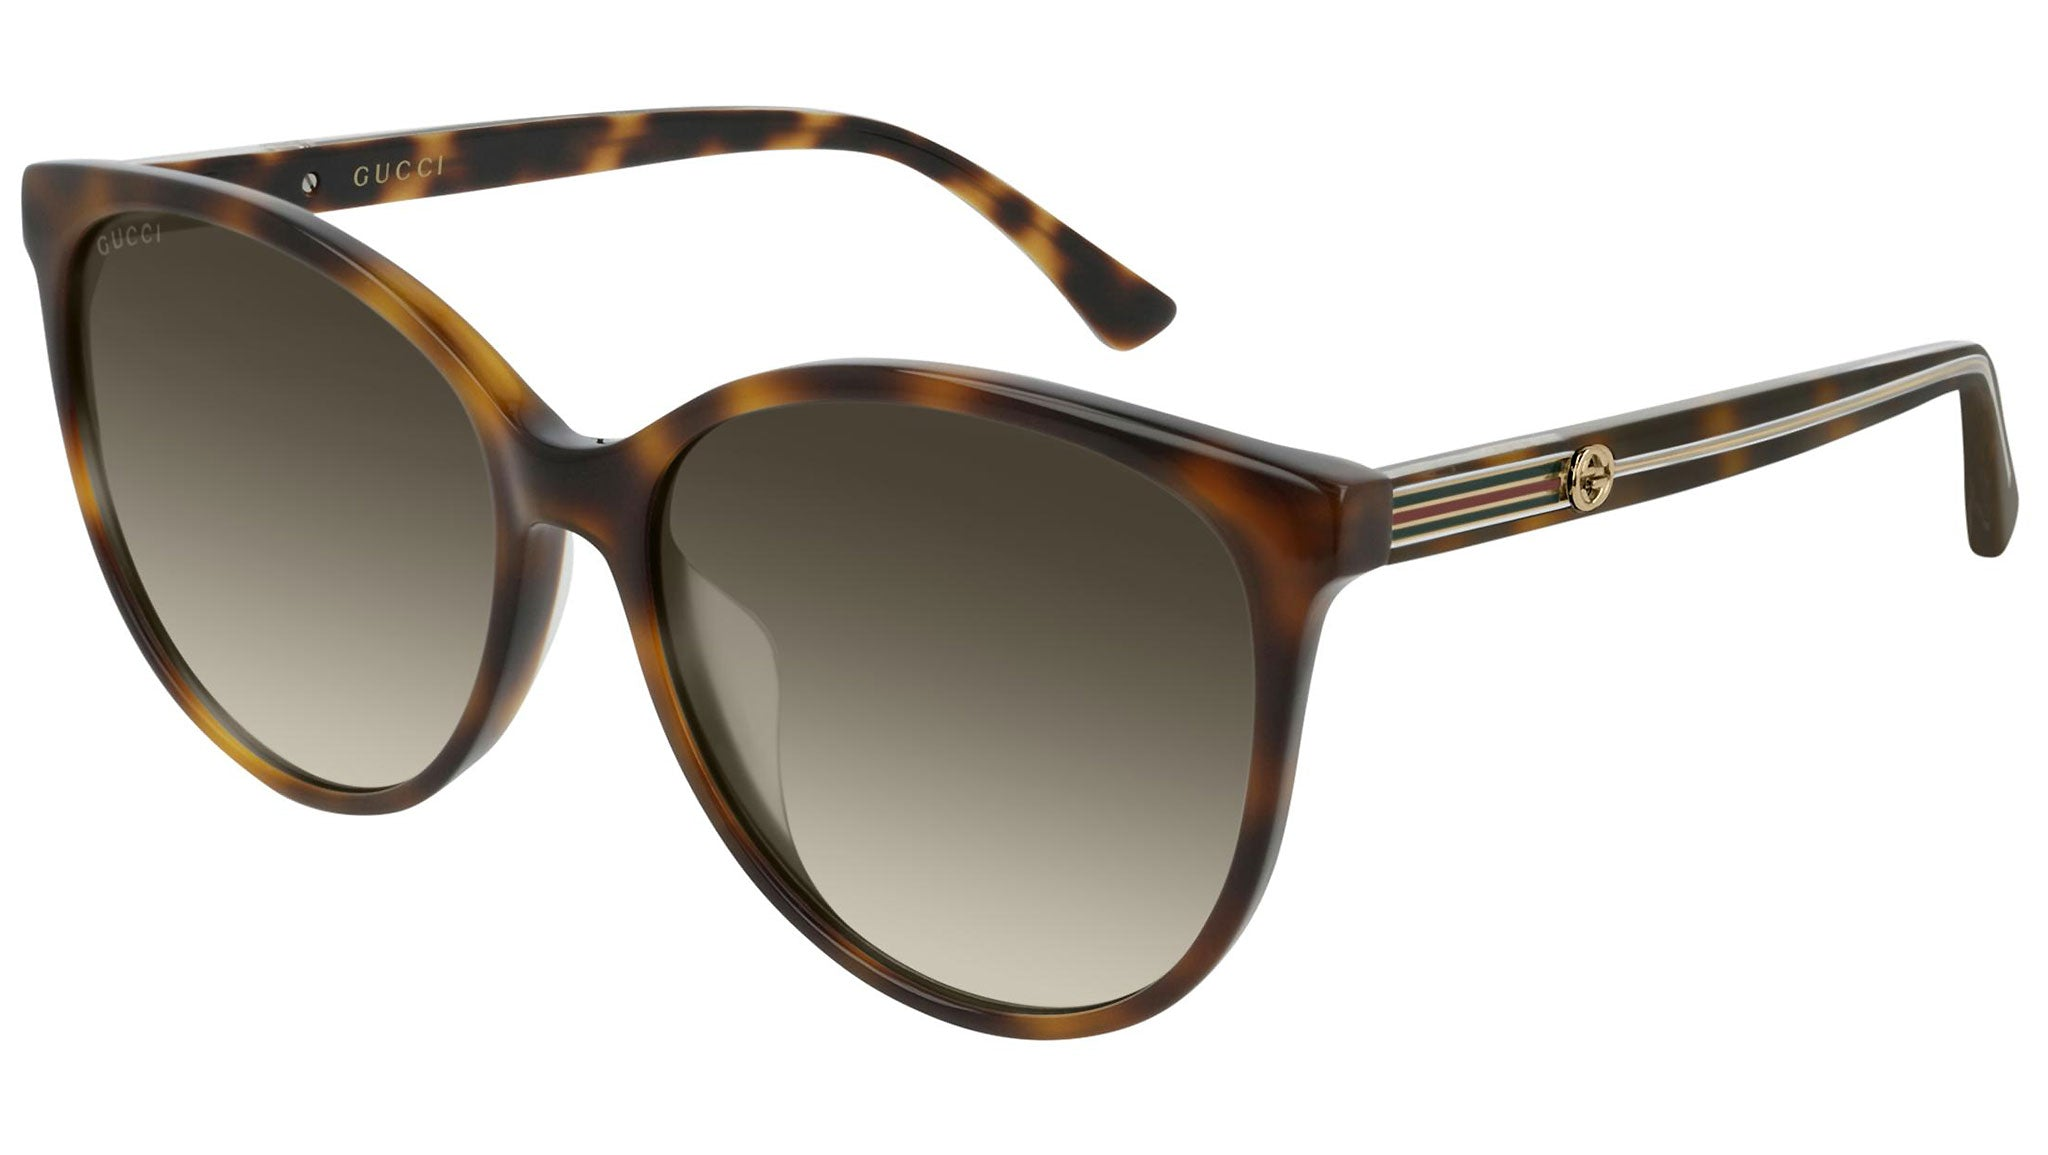 GG0377SK shiny havana and brown